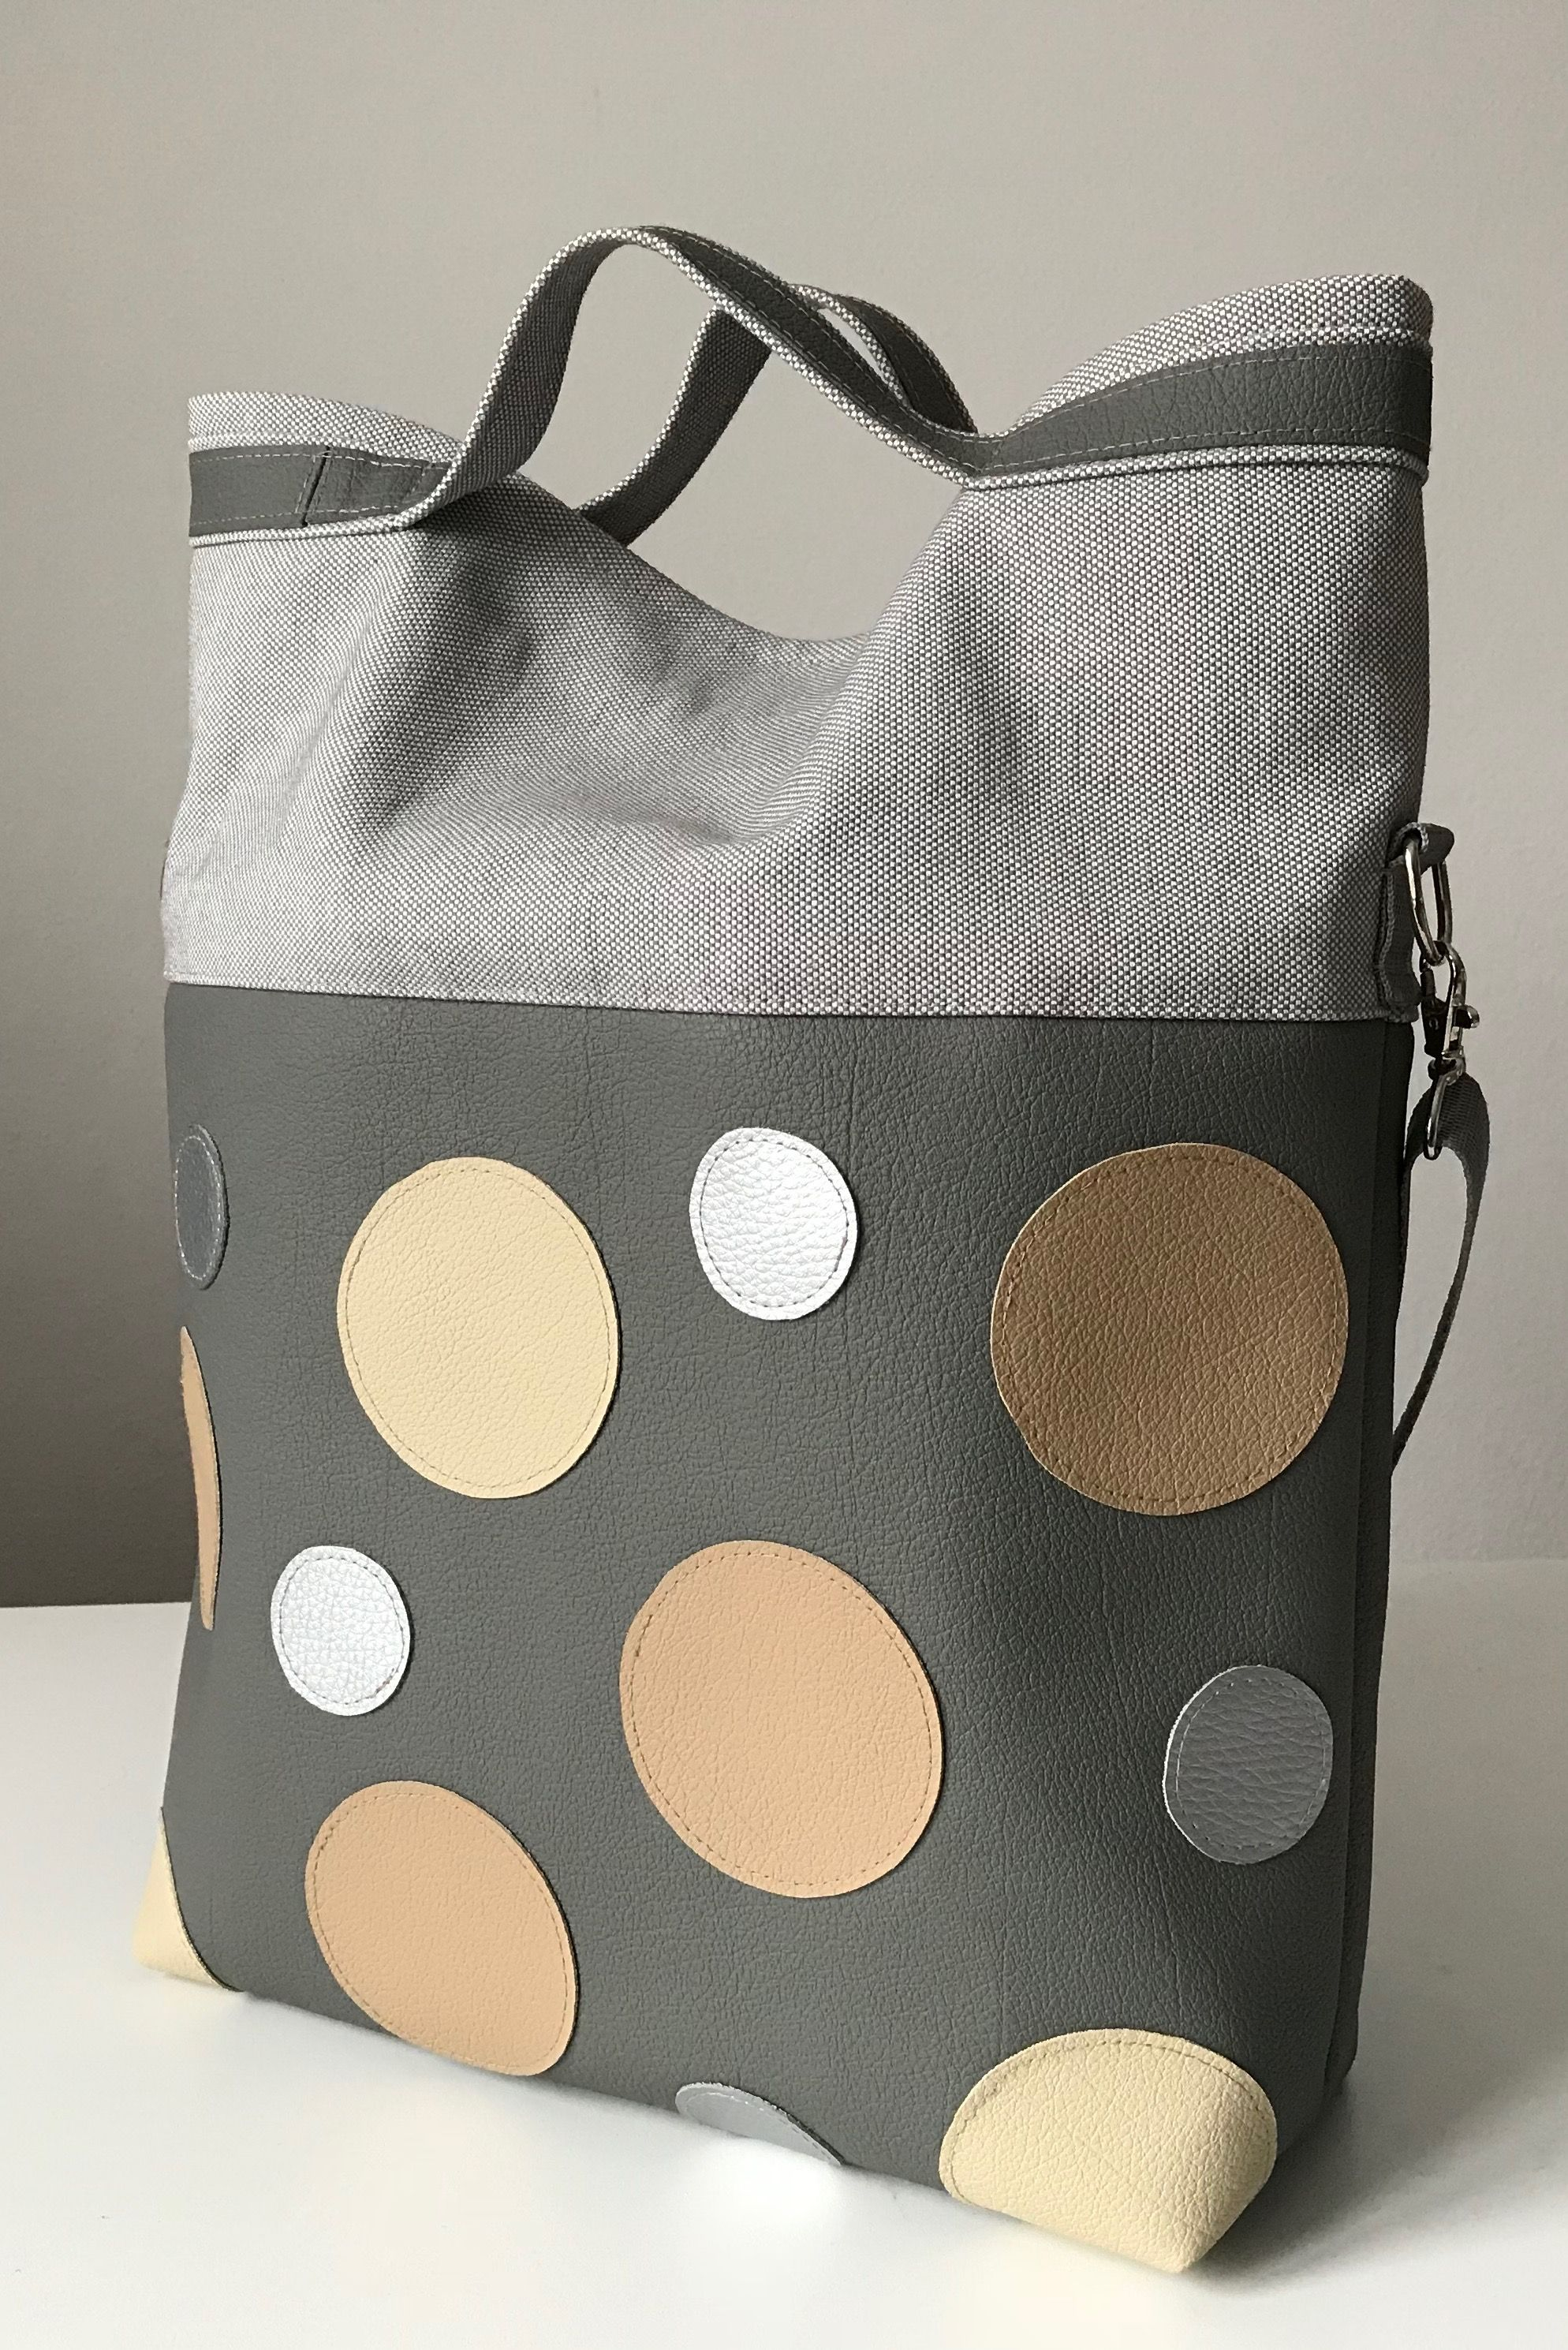 Bolsas De Tela Decoradas Shoulderbag Messengerbag Bag Silver Grey Beige Polka